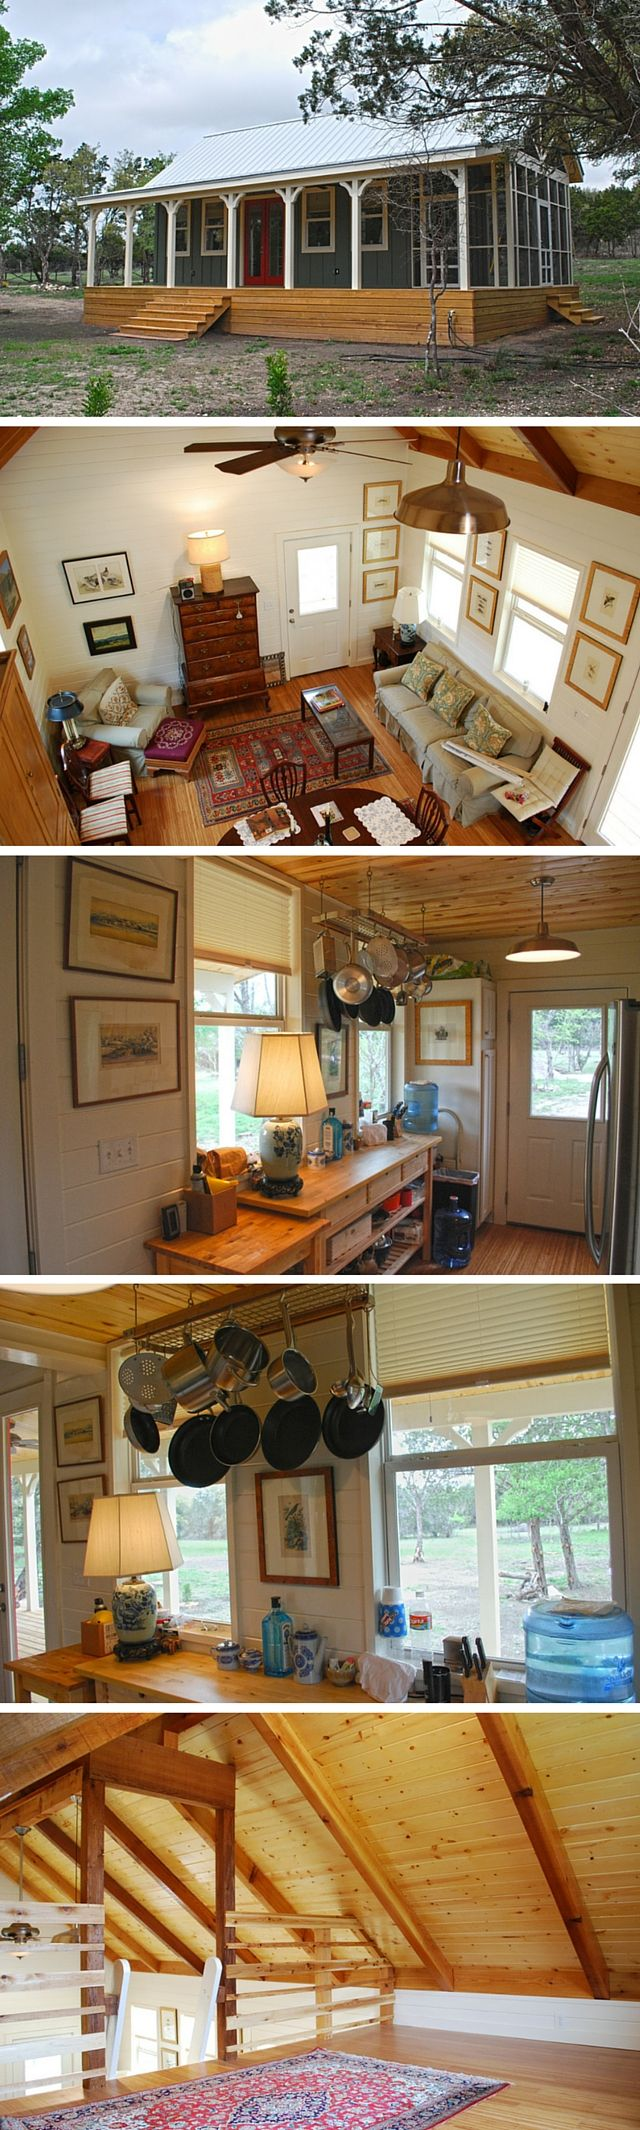 best 25 farm cottage ideas that you will like on pinterest